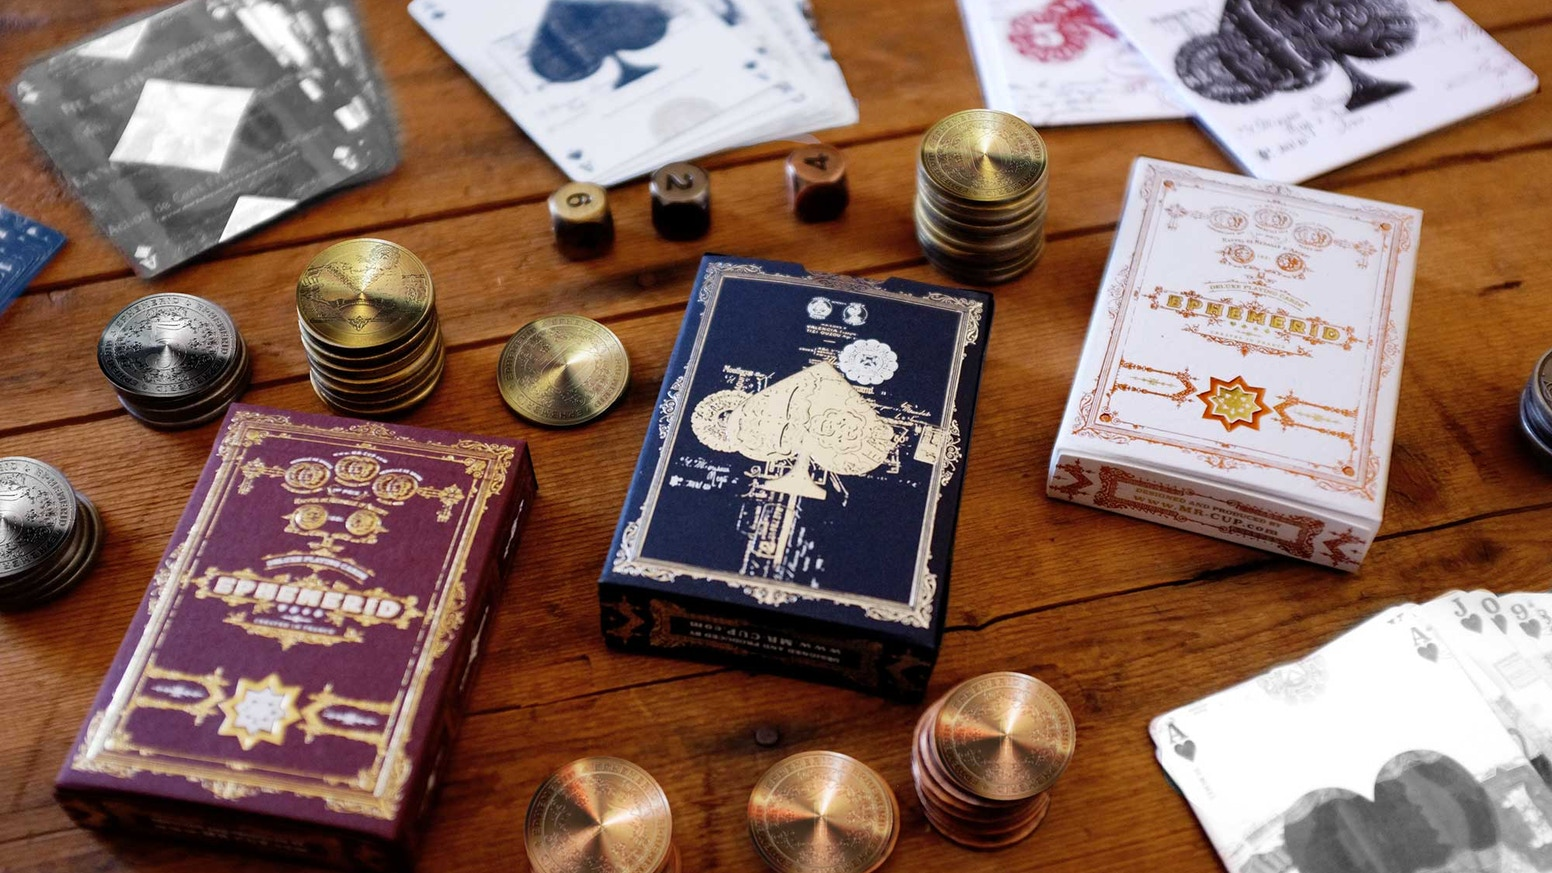 GOLD/SILVER/COPPER edition of the EPHEMERID playing cards, with precious metal coins and dices. With an ultimate box set edition.